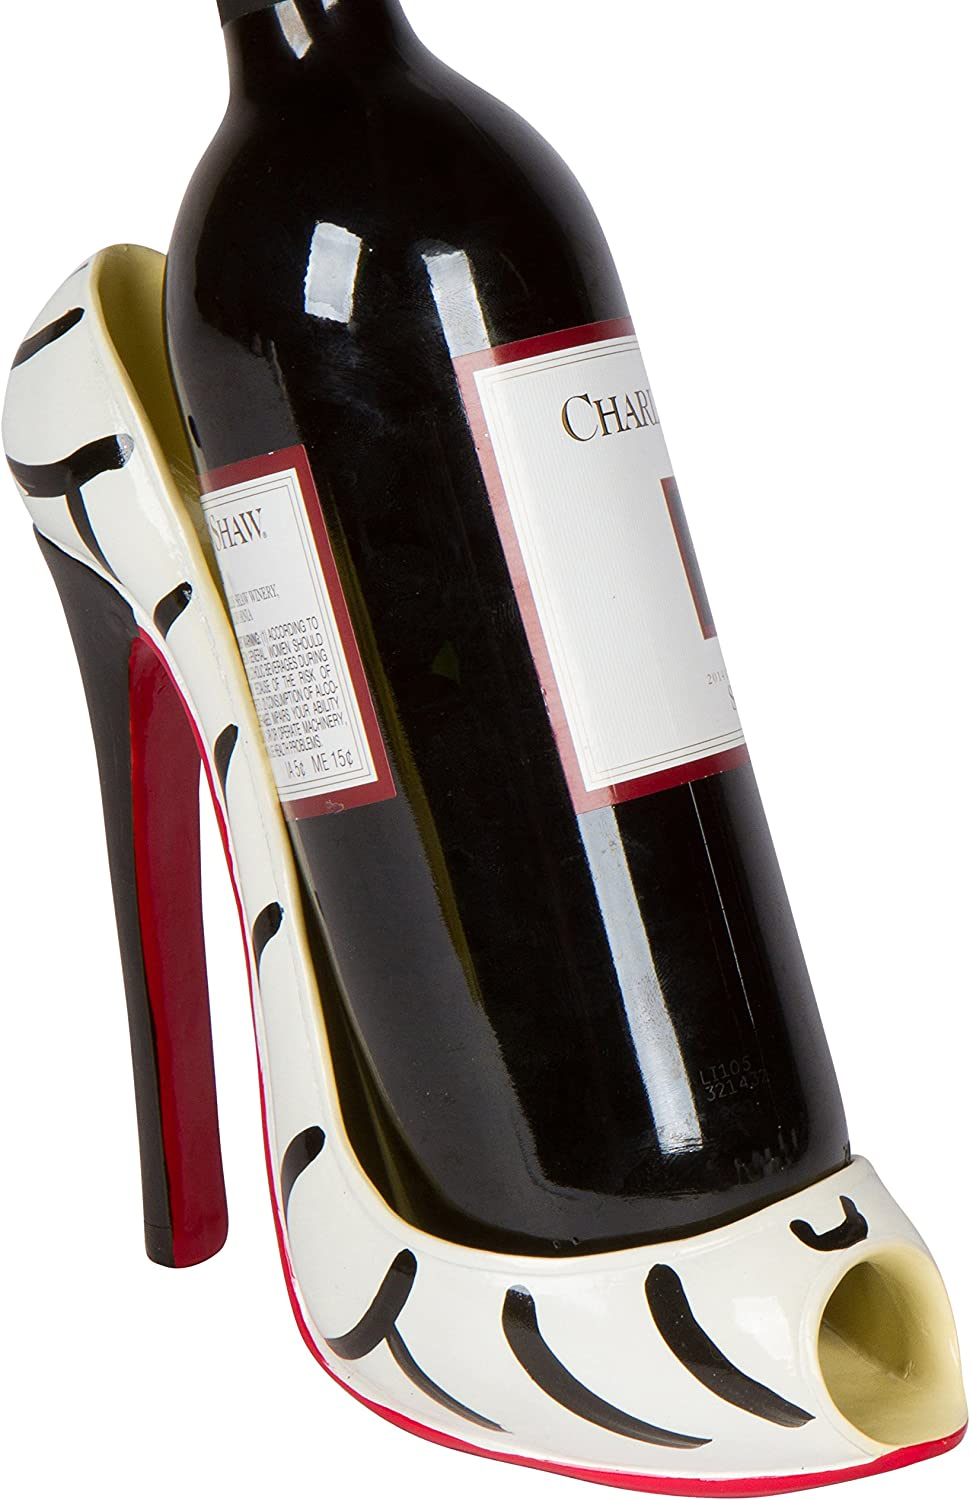 "Hilarious Home 8"" x 7""H High Heel Wine Bottle Holder - Stylish Conversation Starter Wine Rack (Zebra)"